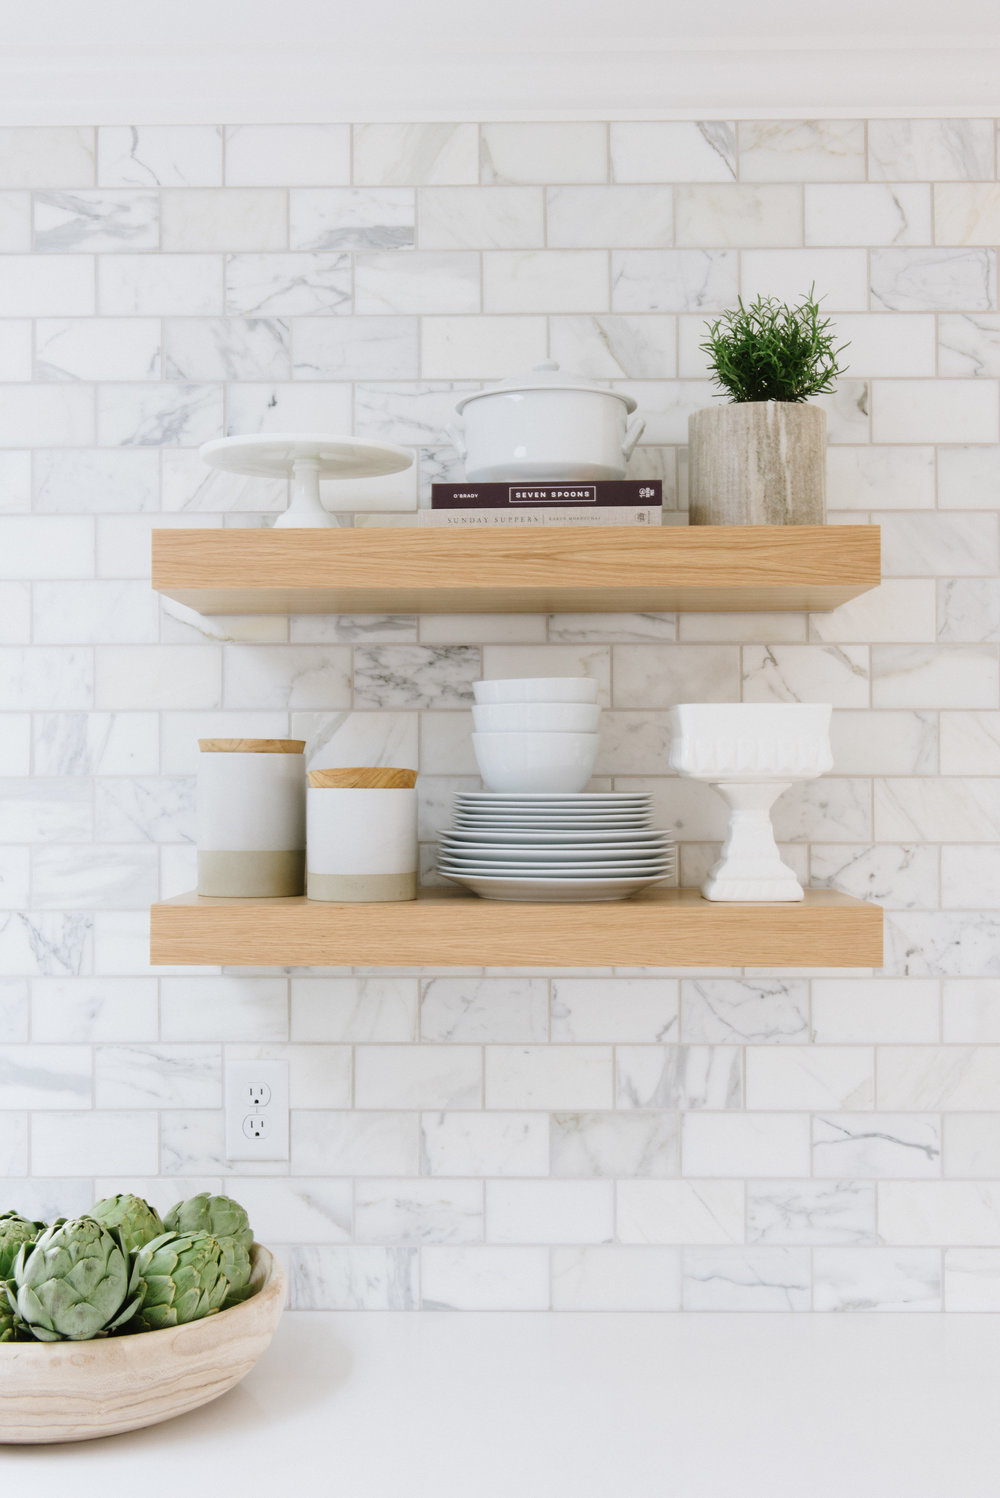 Two wooden built in shelves in kitchen